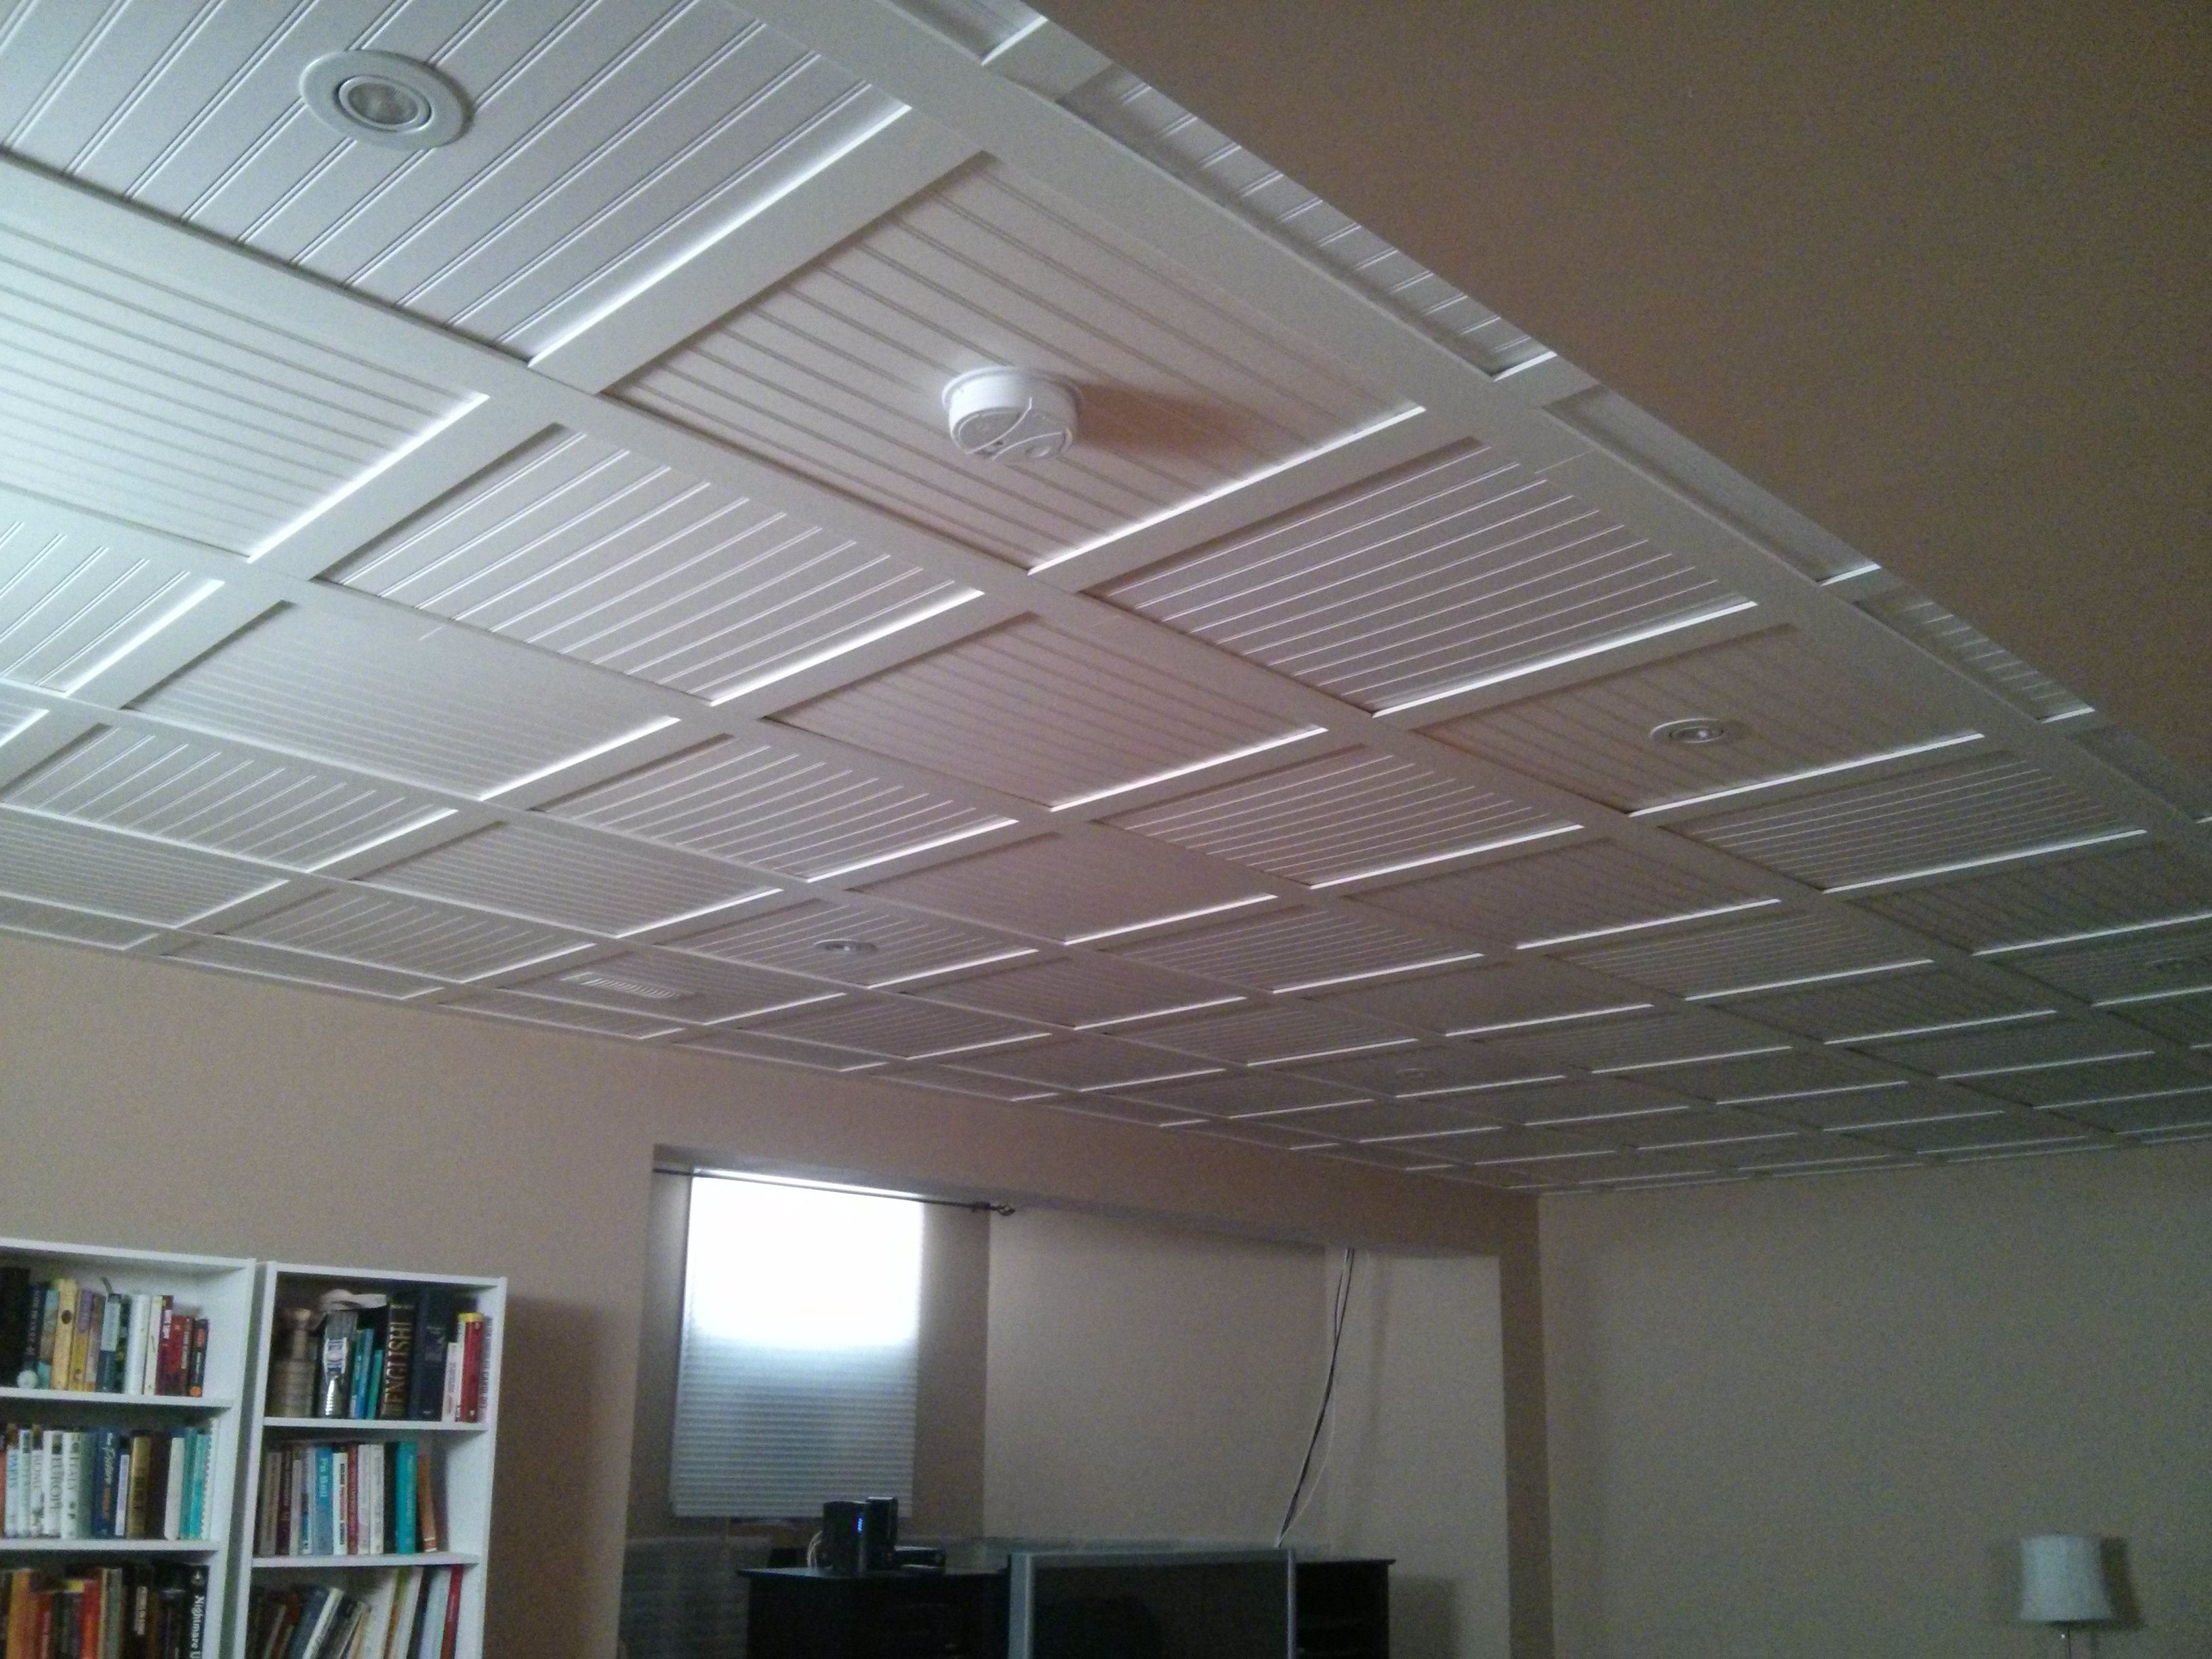 ceilings a living drop mount news direct suspended room ceiling home coffered woodtrac systems february powell down tiles blog